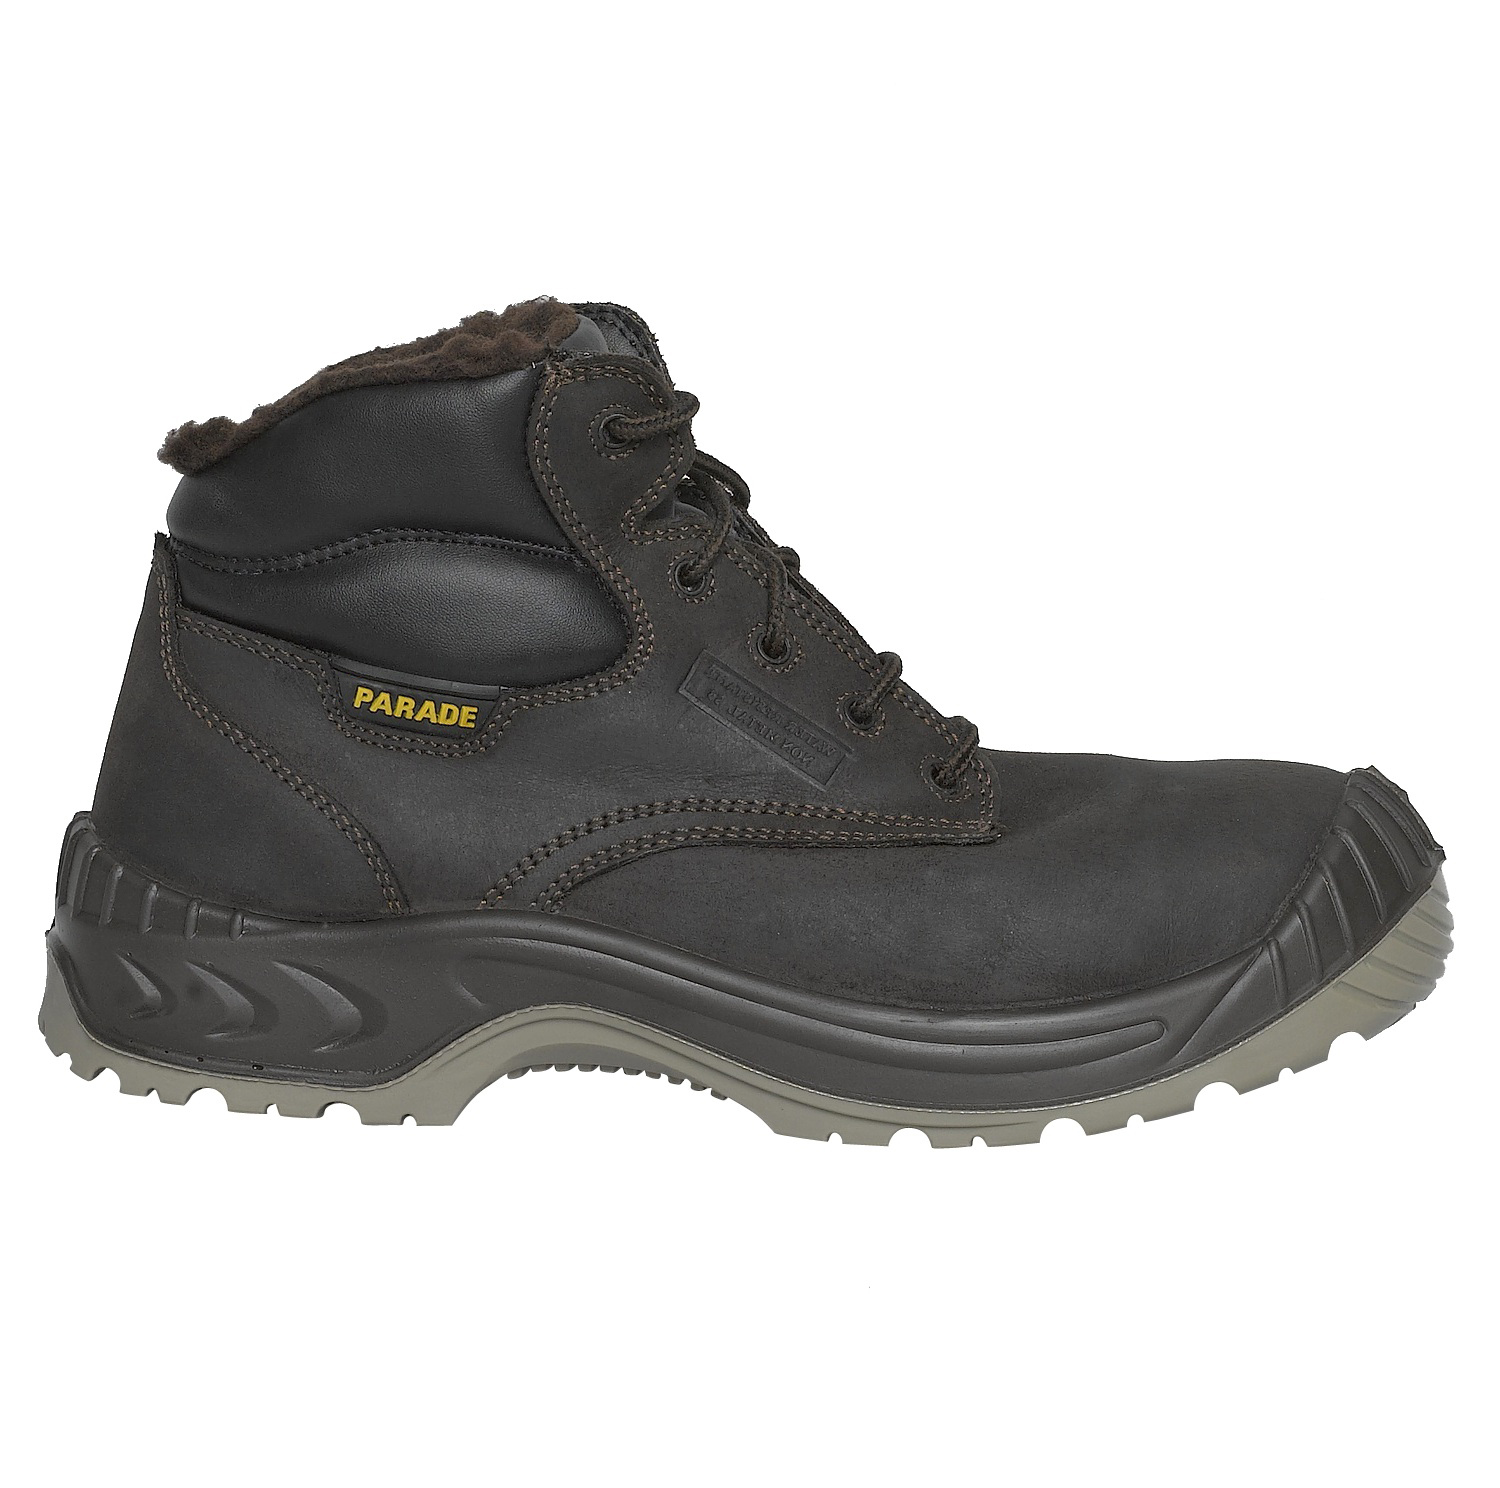 Chaussures de securite PARADE NORWAY S3 SRC